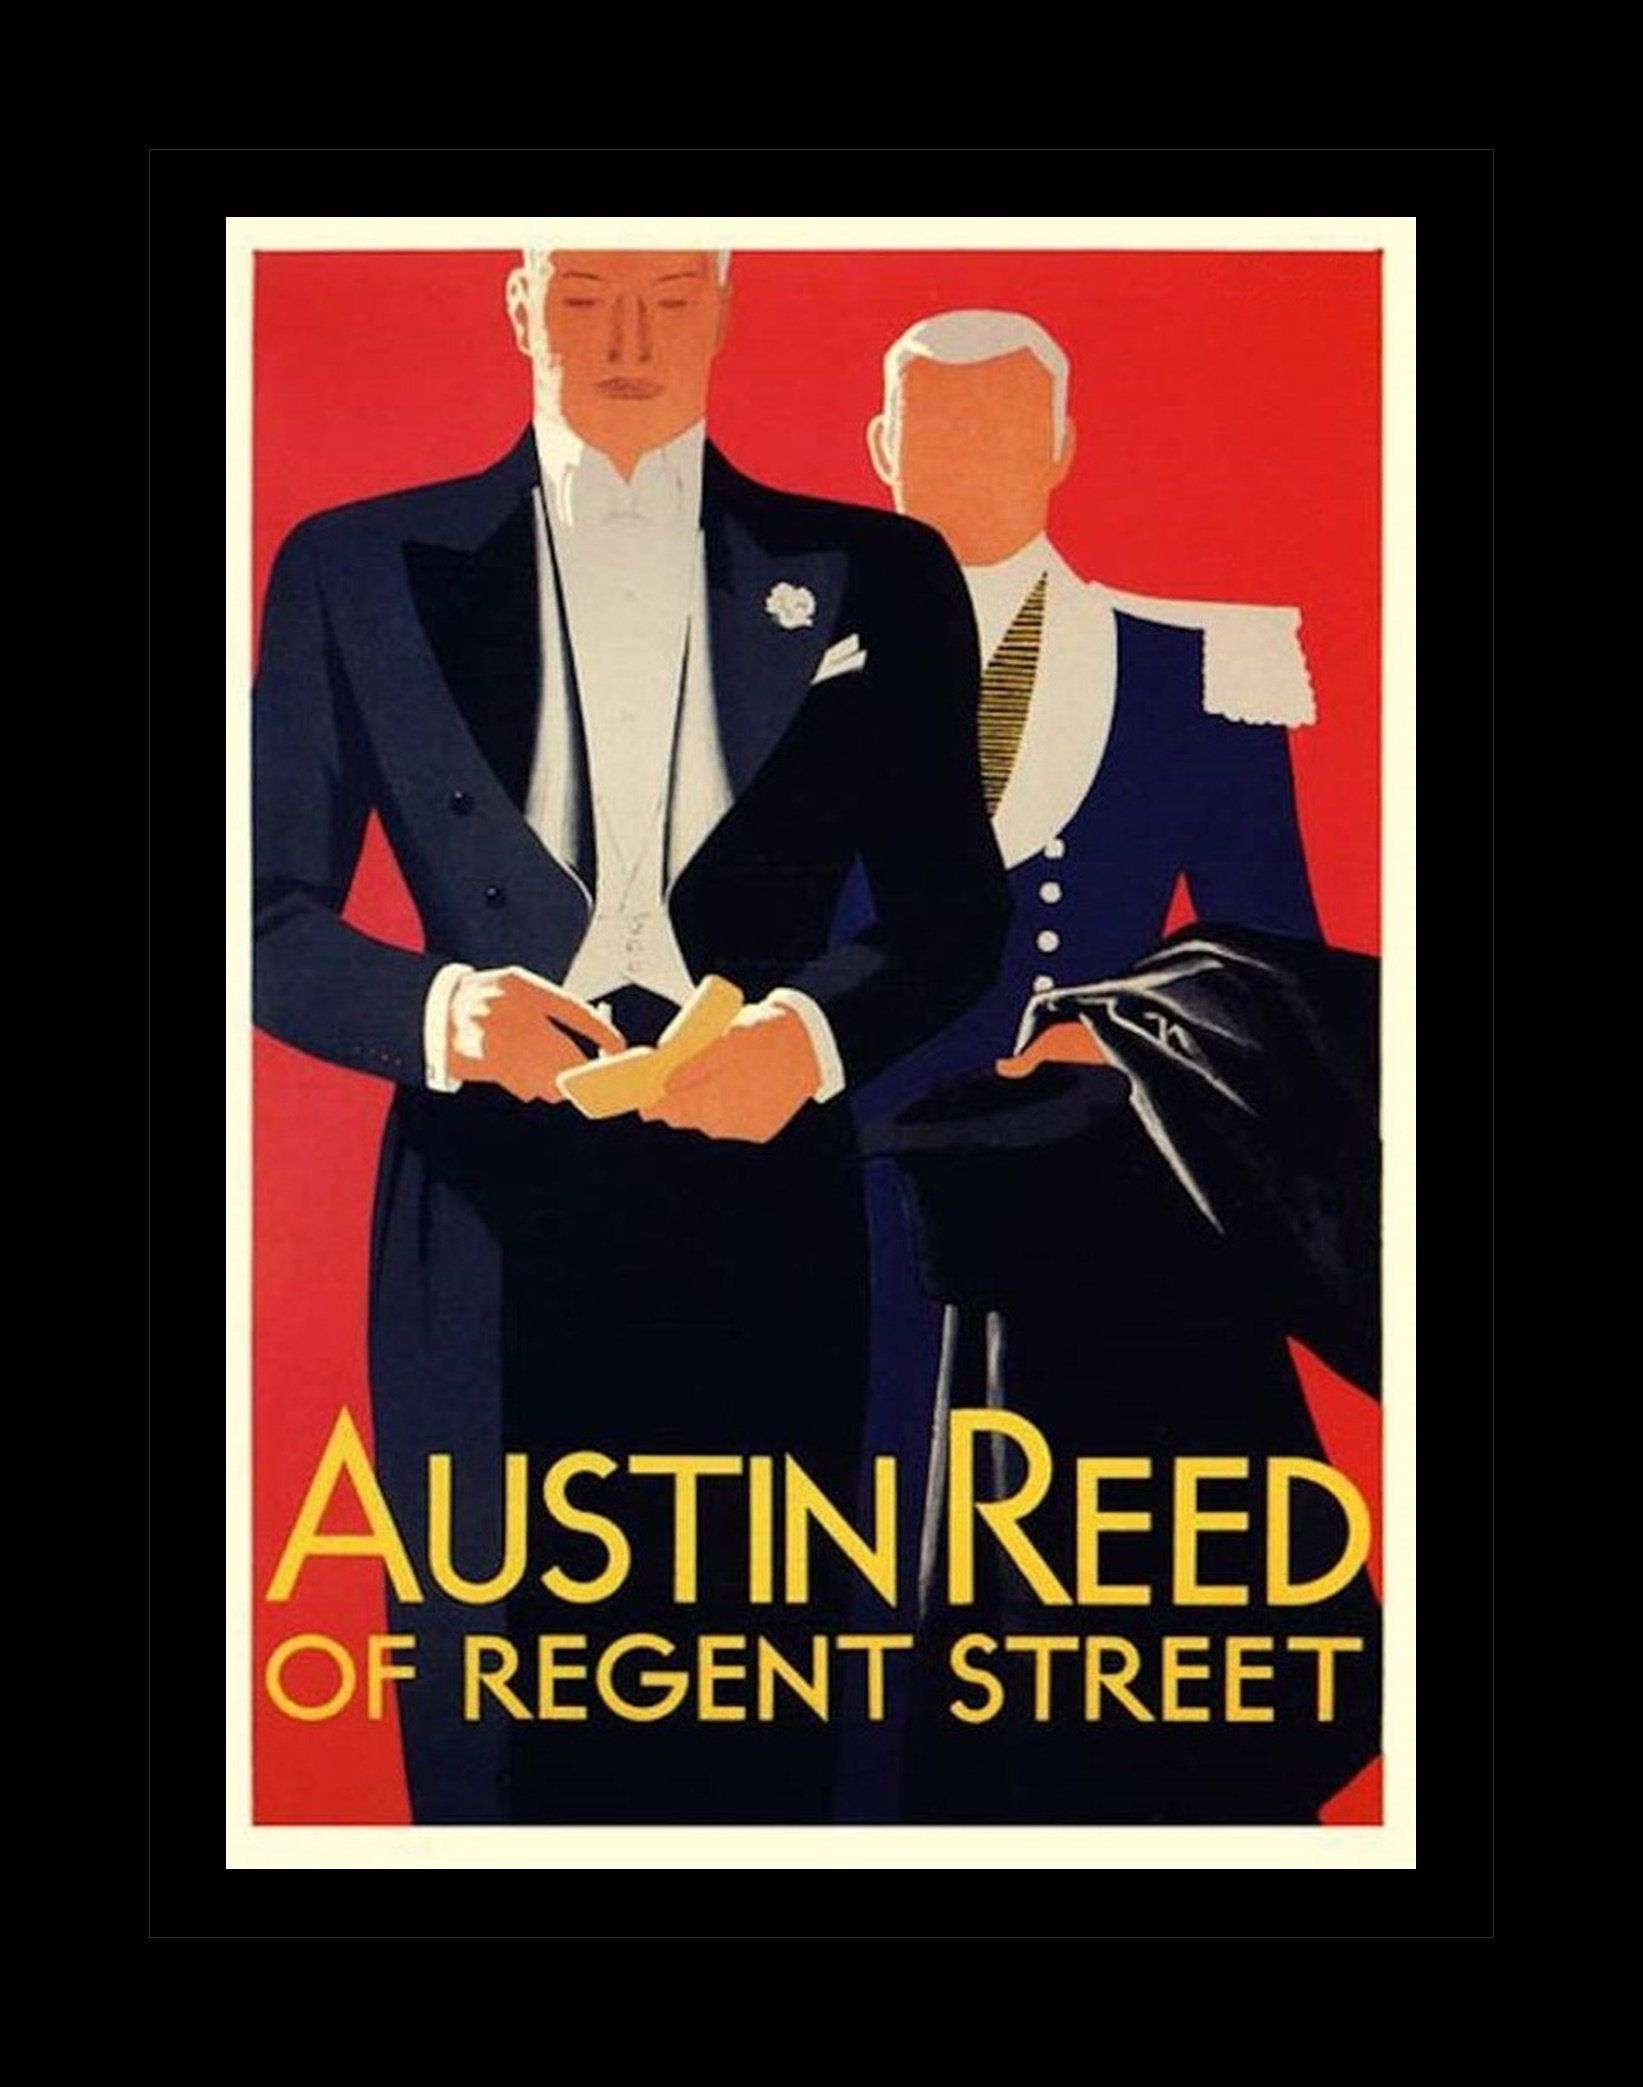 Vintage Austin Reed Ad Illustration Poster Gift For Men Red Black Bathroom Wall Art Tuxedo Mens Cl Austin Reed Vintage Advertising Posters Vintage Austin